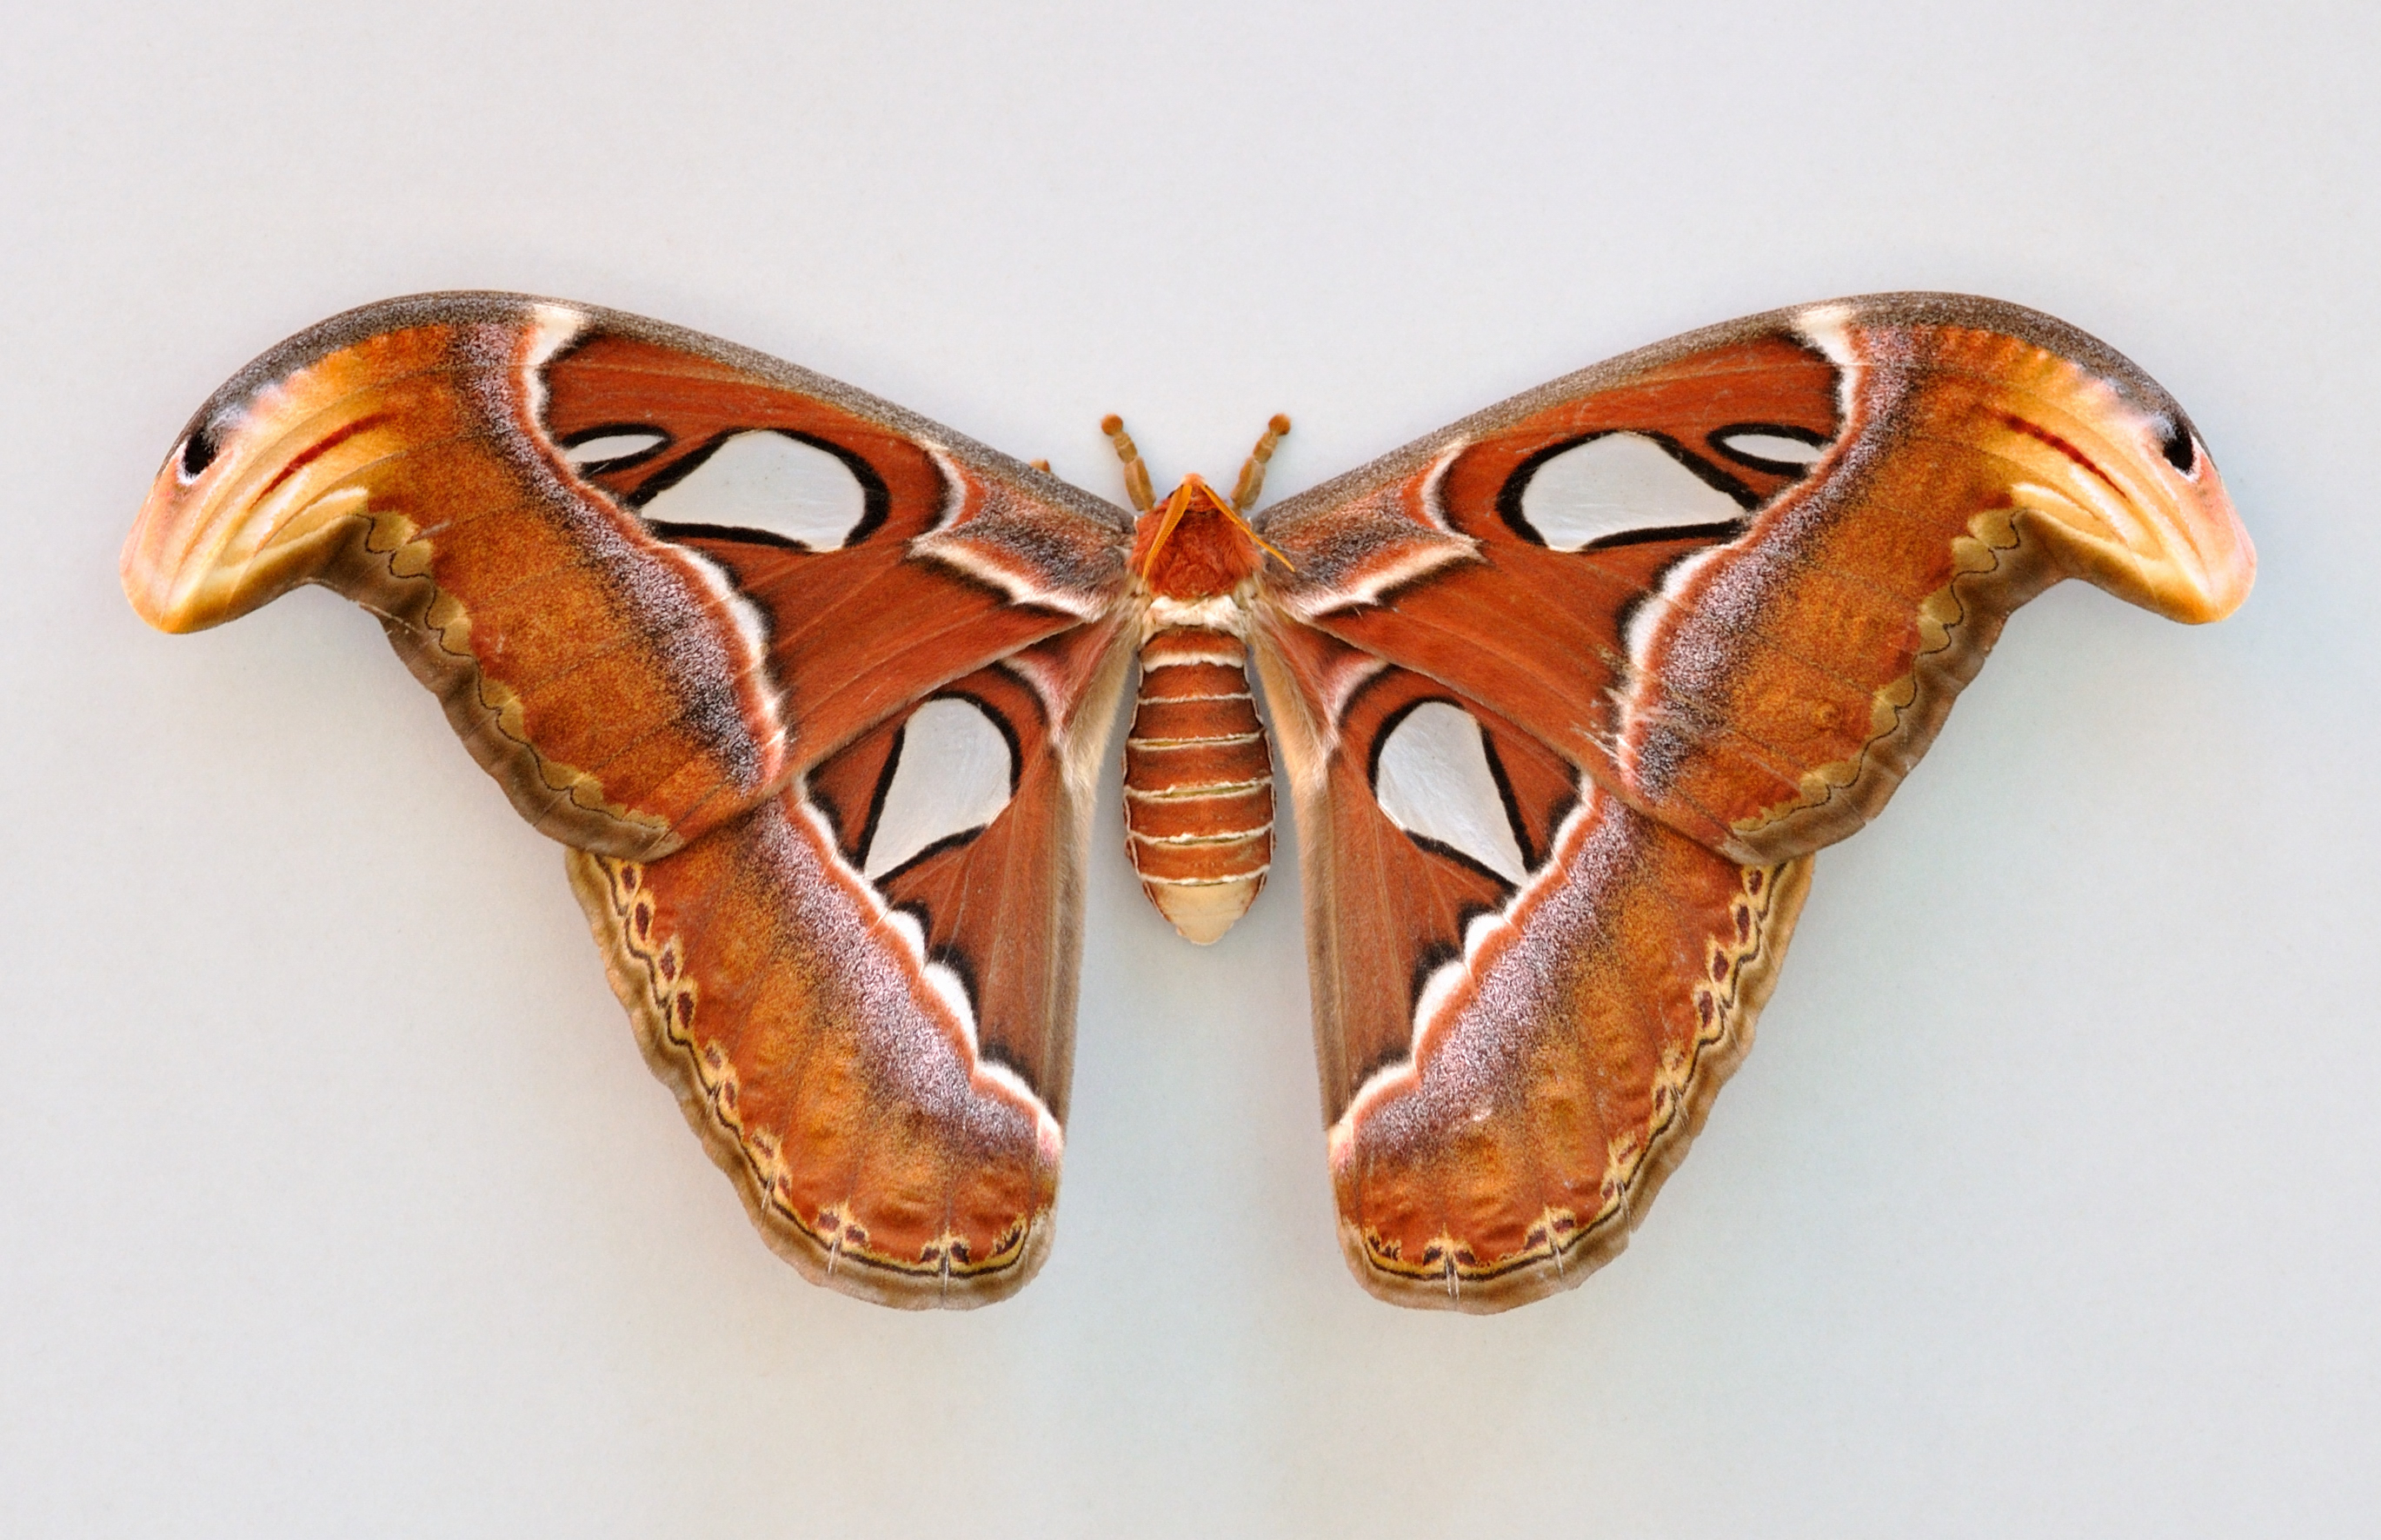 Attacus atlas - Wikipedia